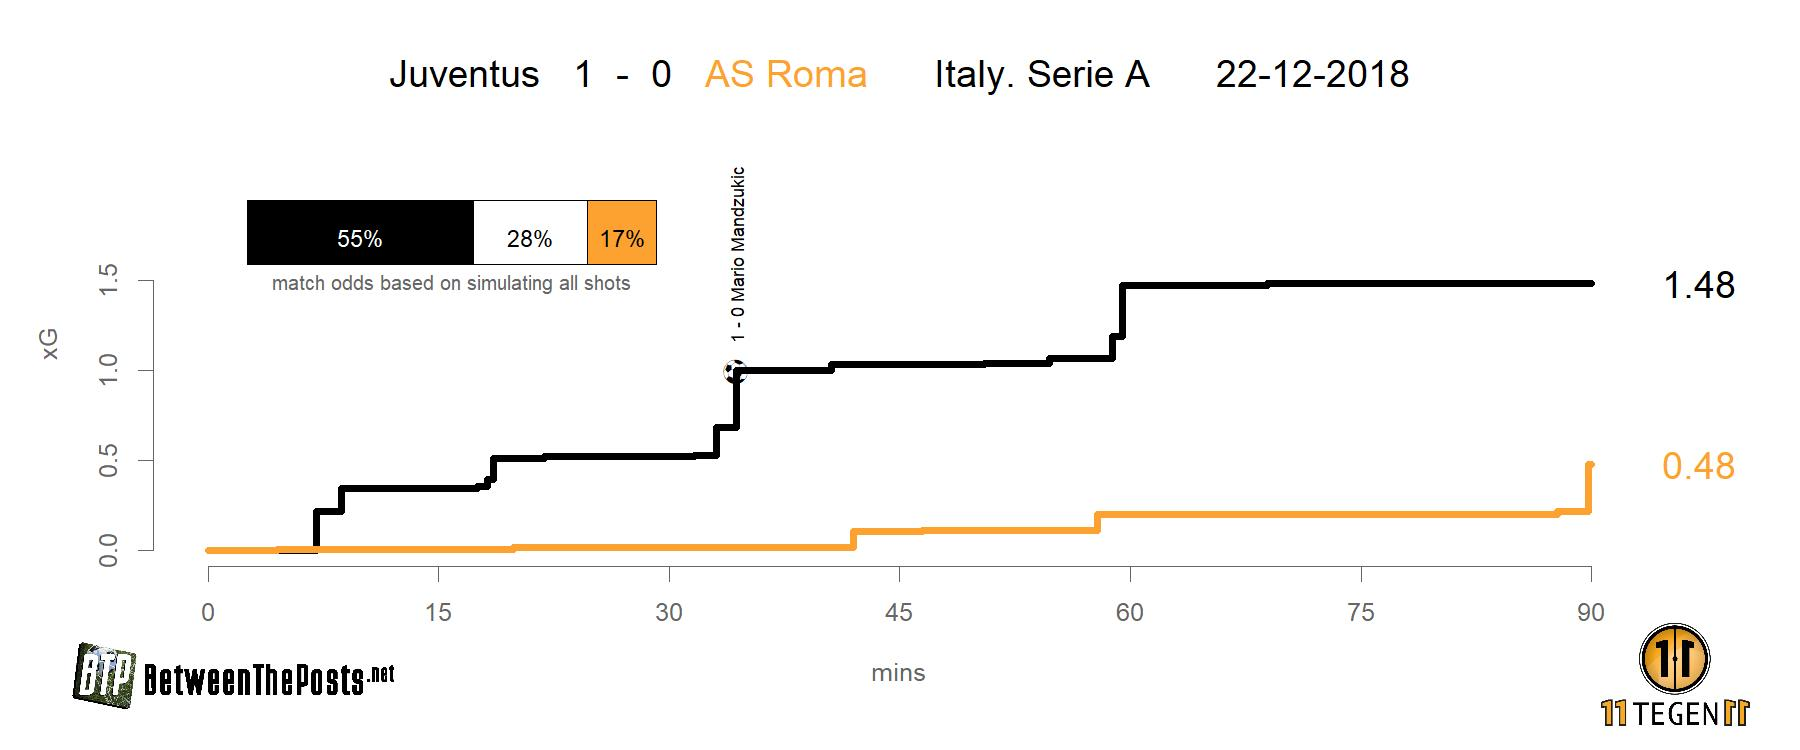 Expected goals plot Juventus - AS Roma 1-0 Serie A